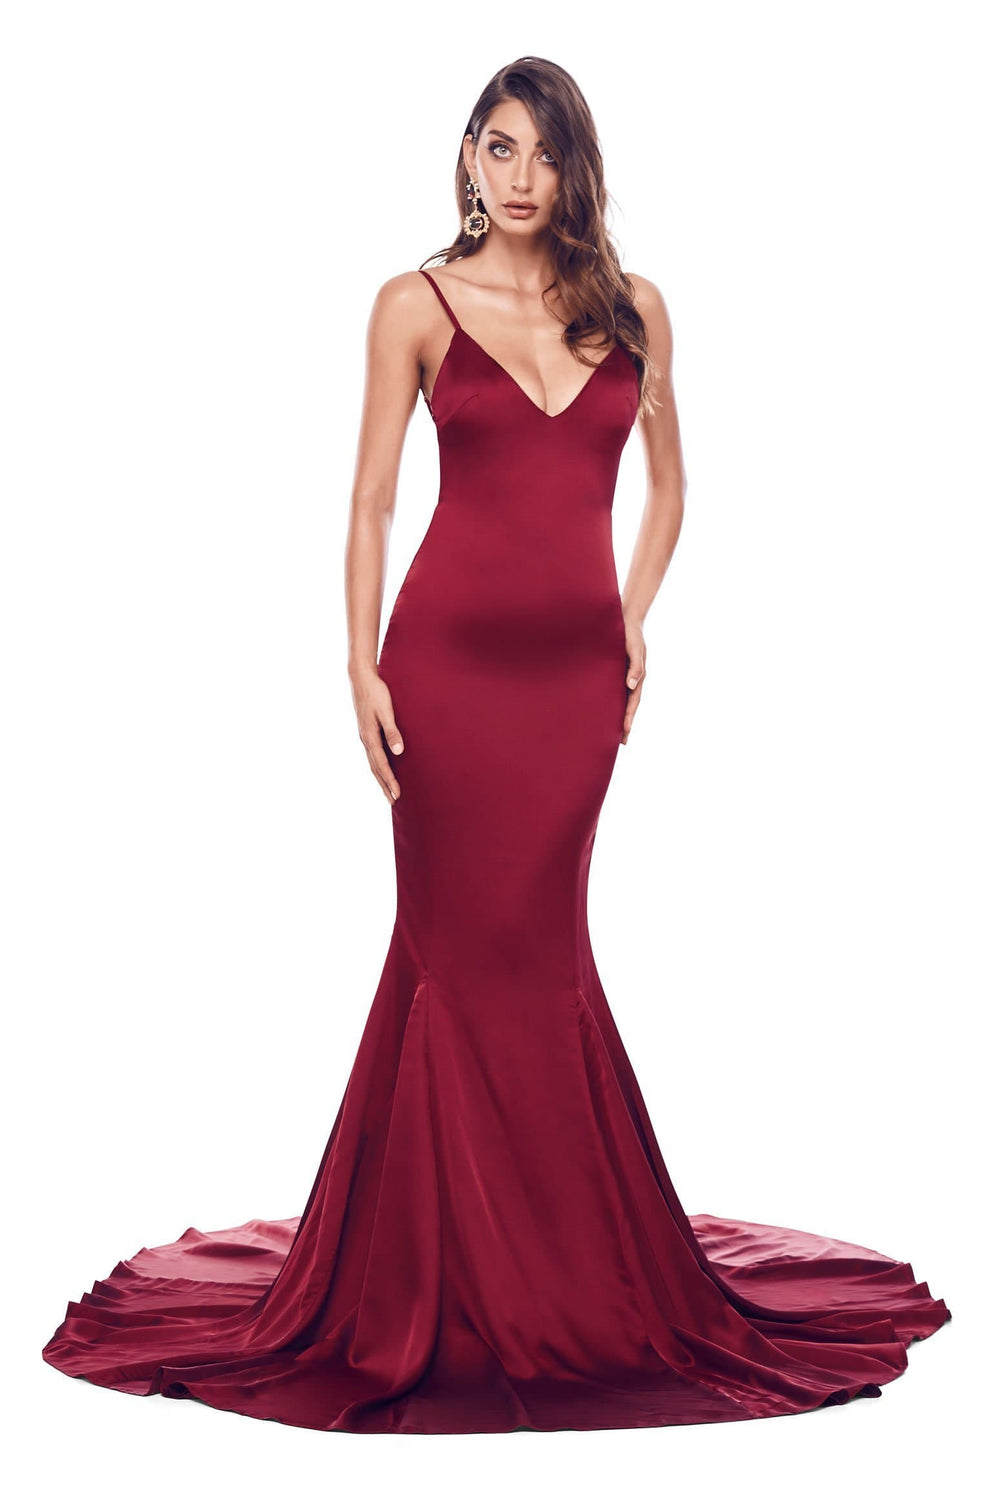 Tamara - Burgundy Satin Backless Gown with V Neckline & Mermaid Train